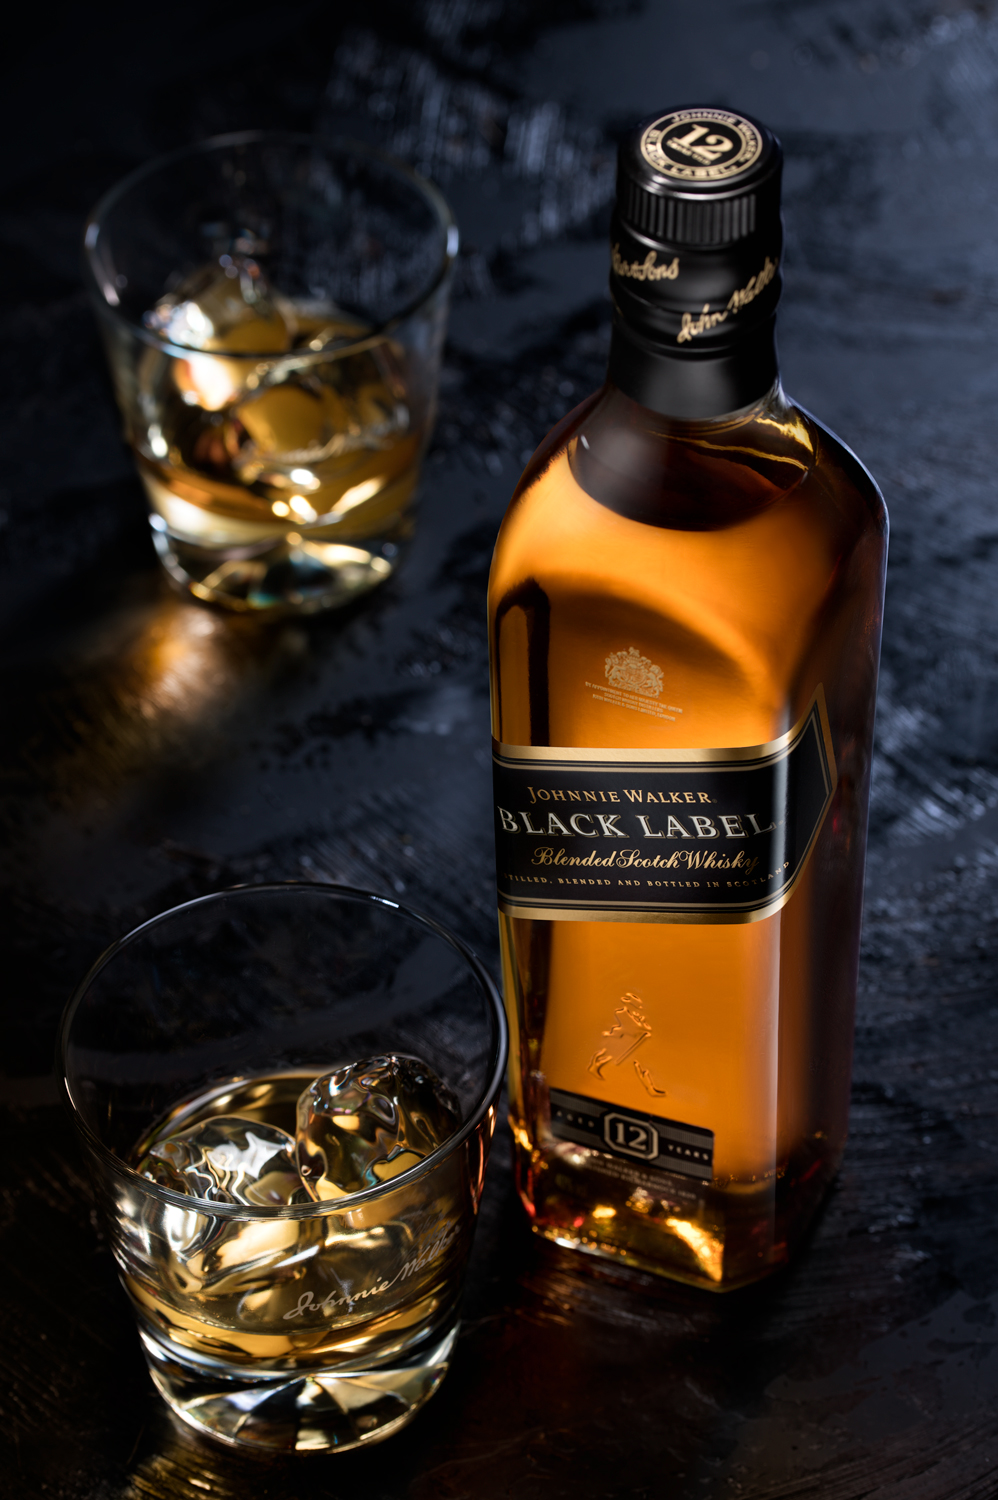 lettstudio_beverage_photography_johnnie_walker.jpg